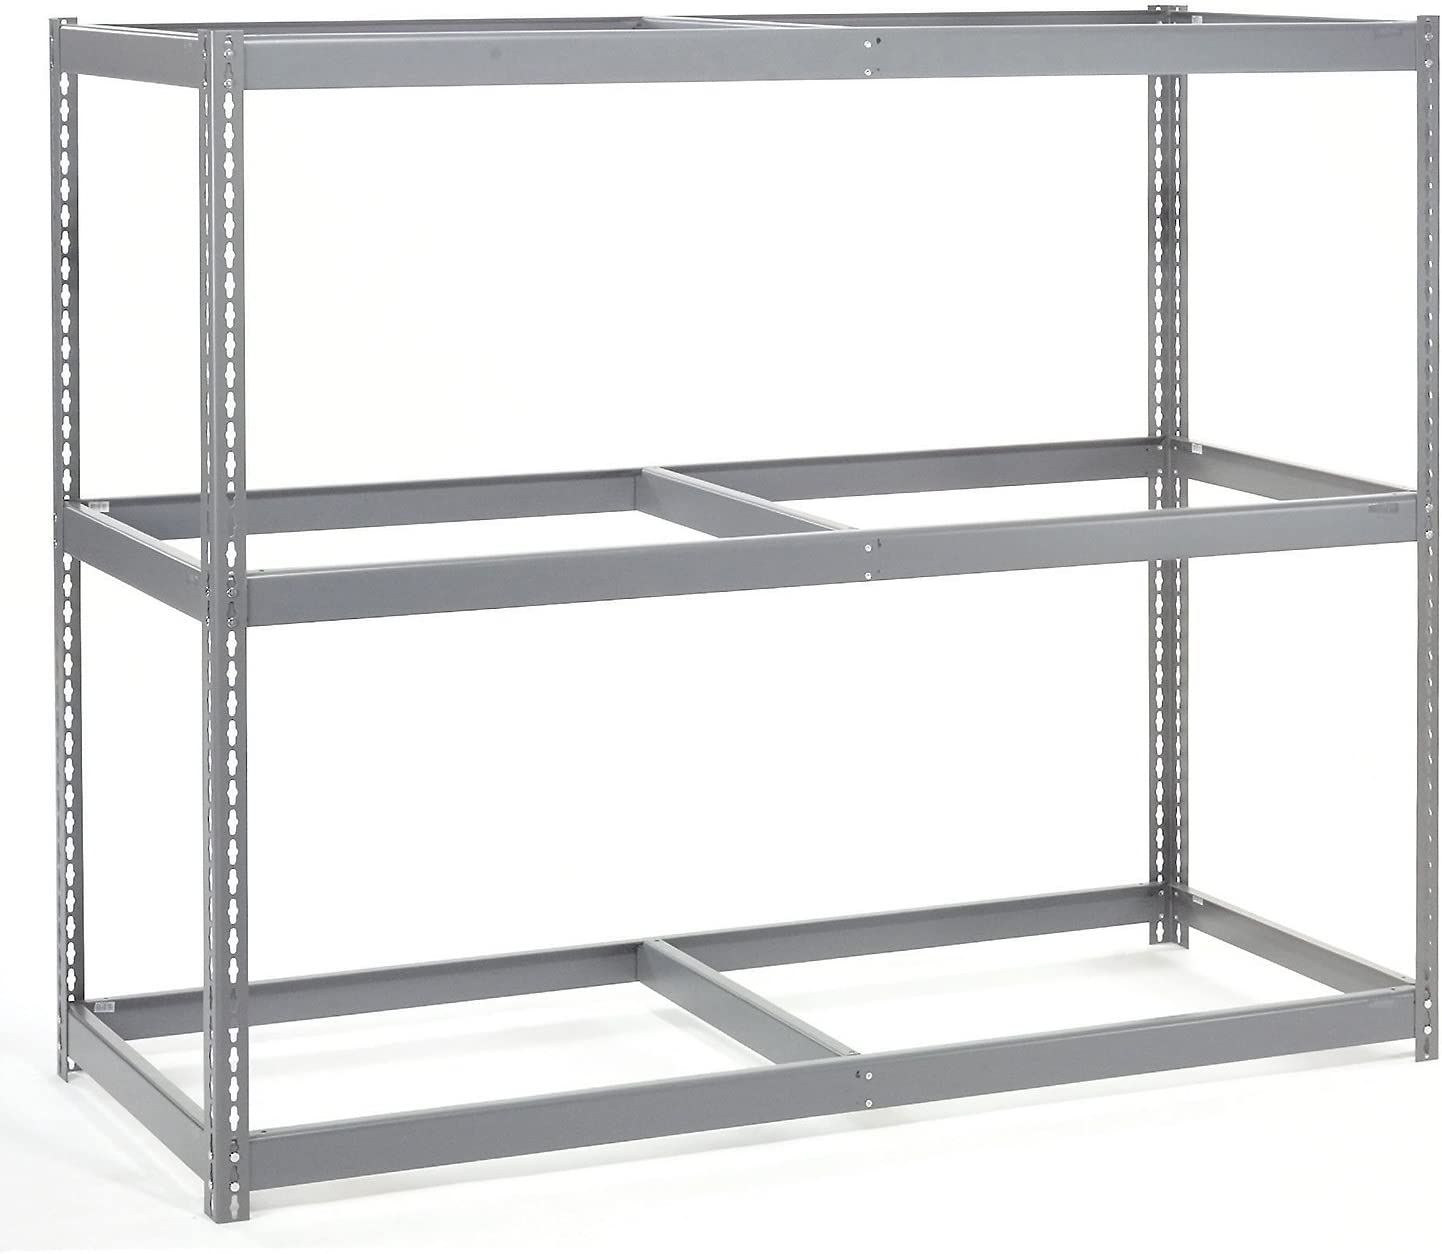 72W x 48D x 60H 900 Lb Capacity Per Level Wide Span Rack With 3 Shelves No Deck